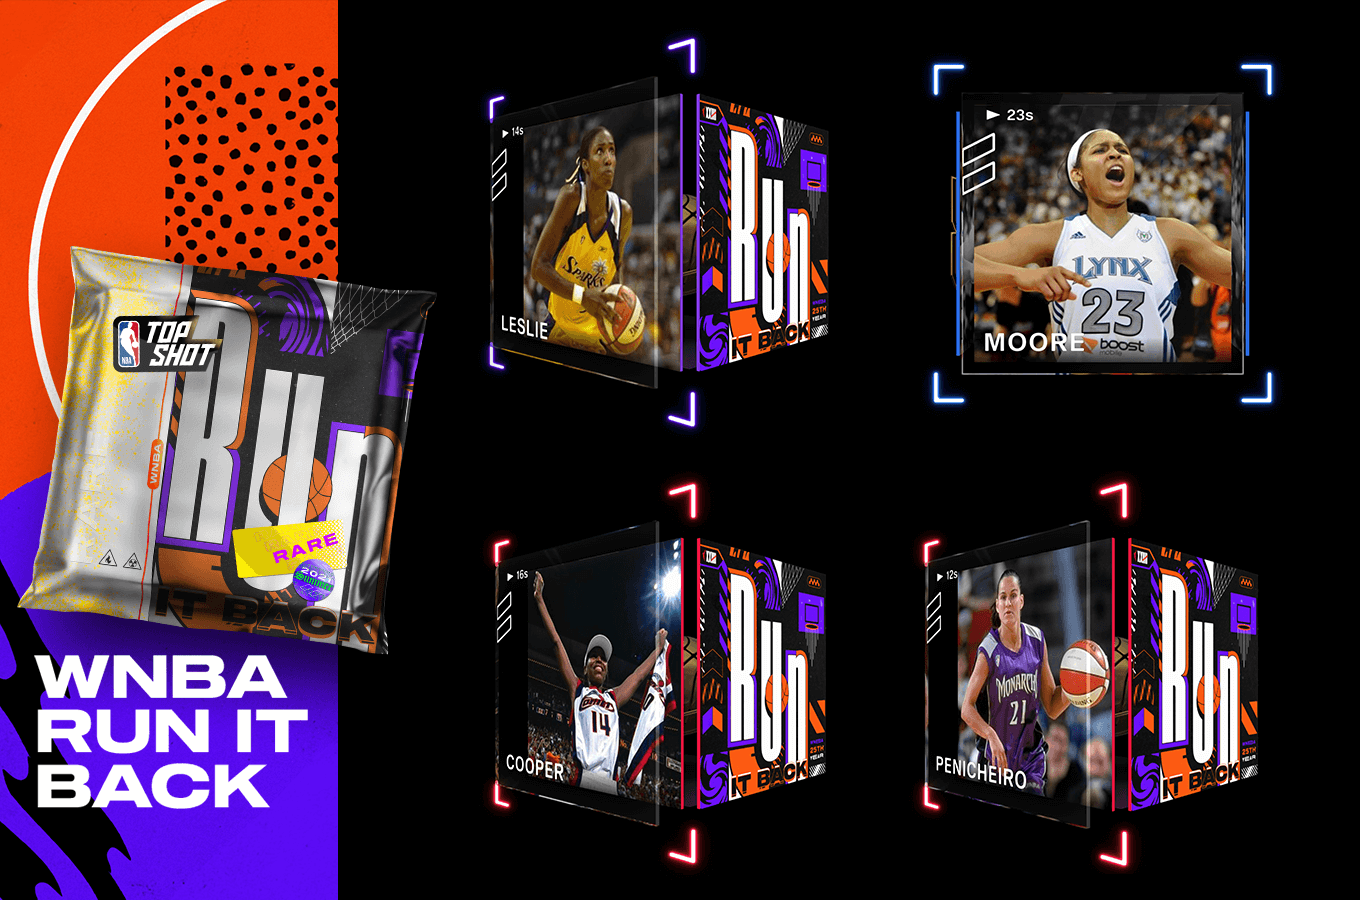 The 25 greatest players in WNBA history are about to have Moments on Top Shot. Find out what's ahead in the first-ever WNBA Rare Drop.